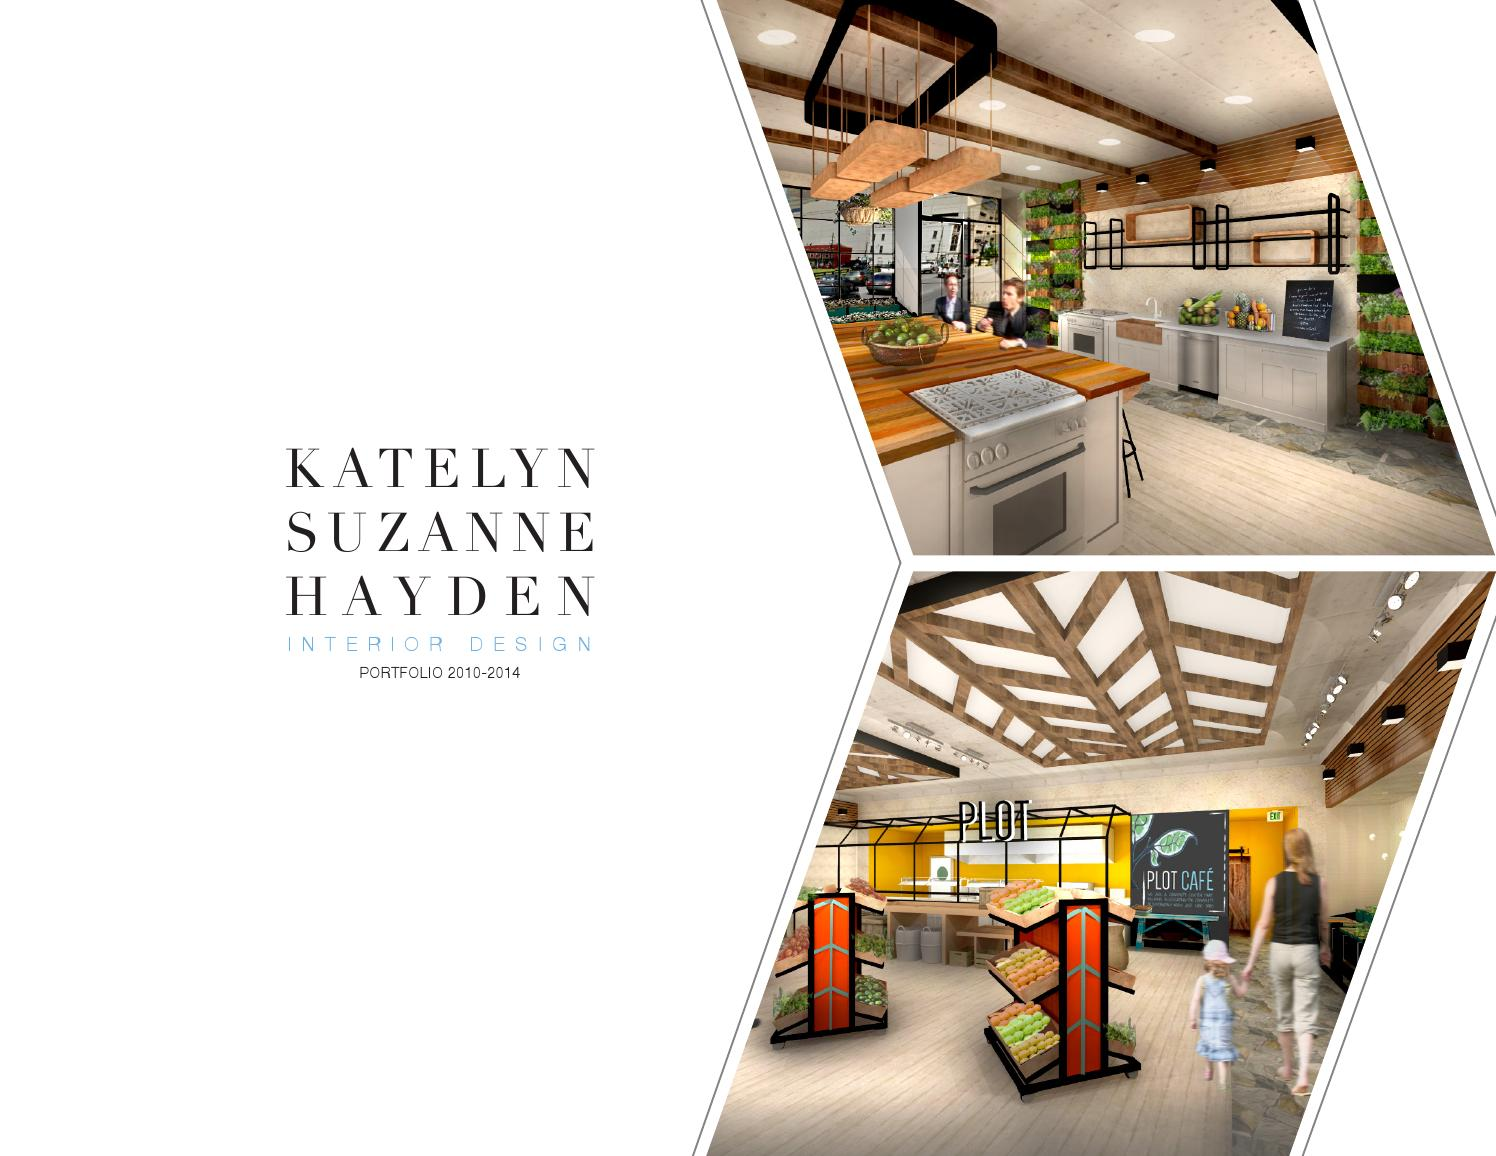 Interior design portfolio by katelyn hayden issuu for Interior design portfolio examples